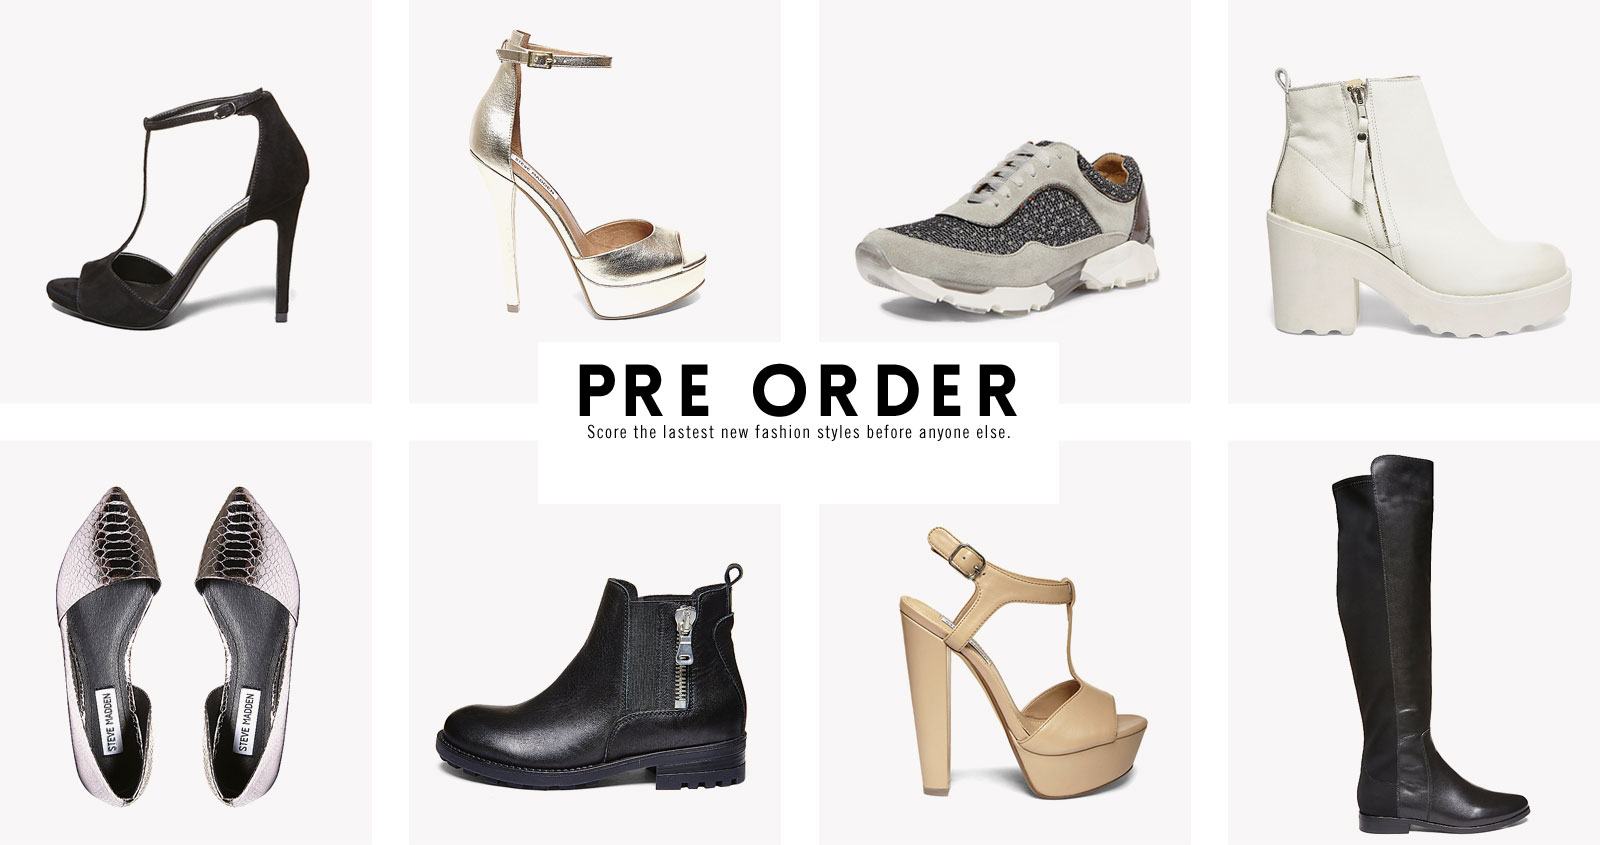 Shop Steve Madden Shoes, Steven by Steve Madden and Madden Girl: STEVE MADDEN